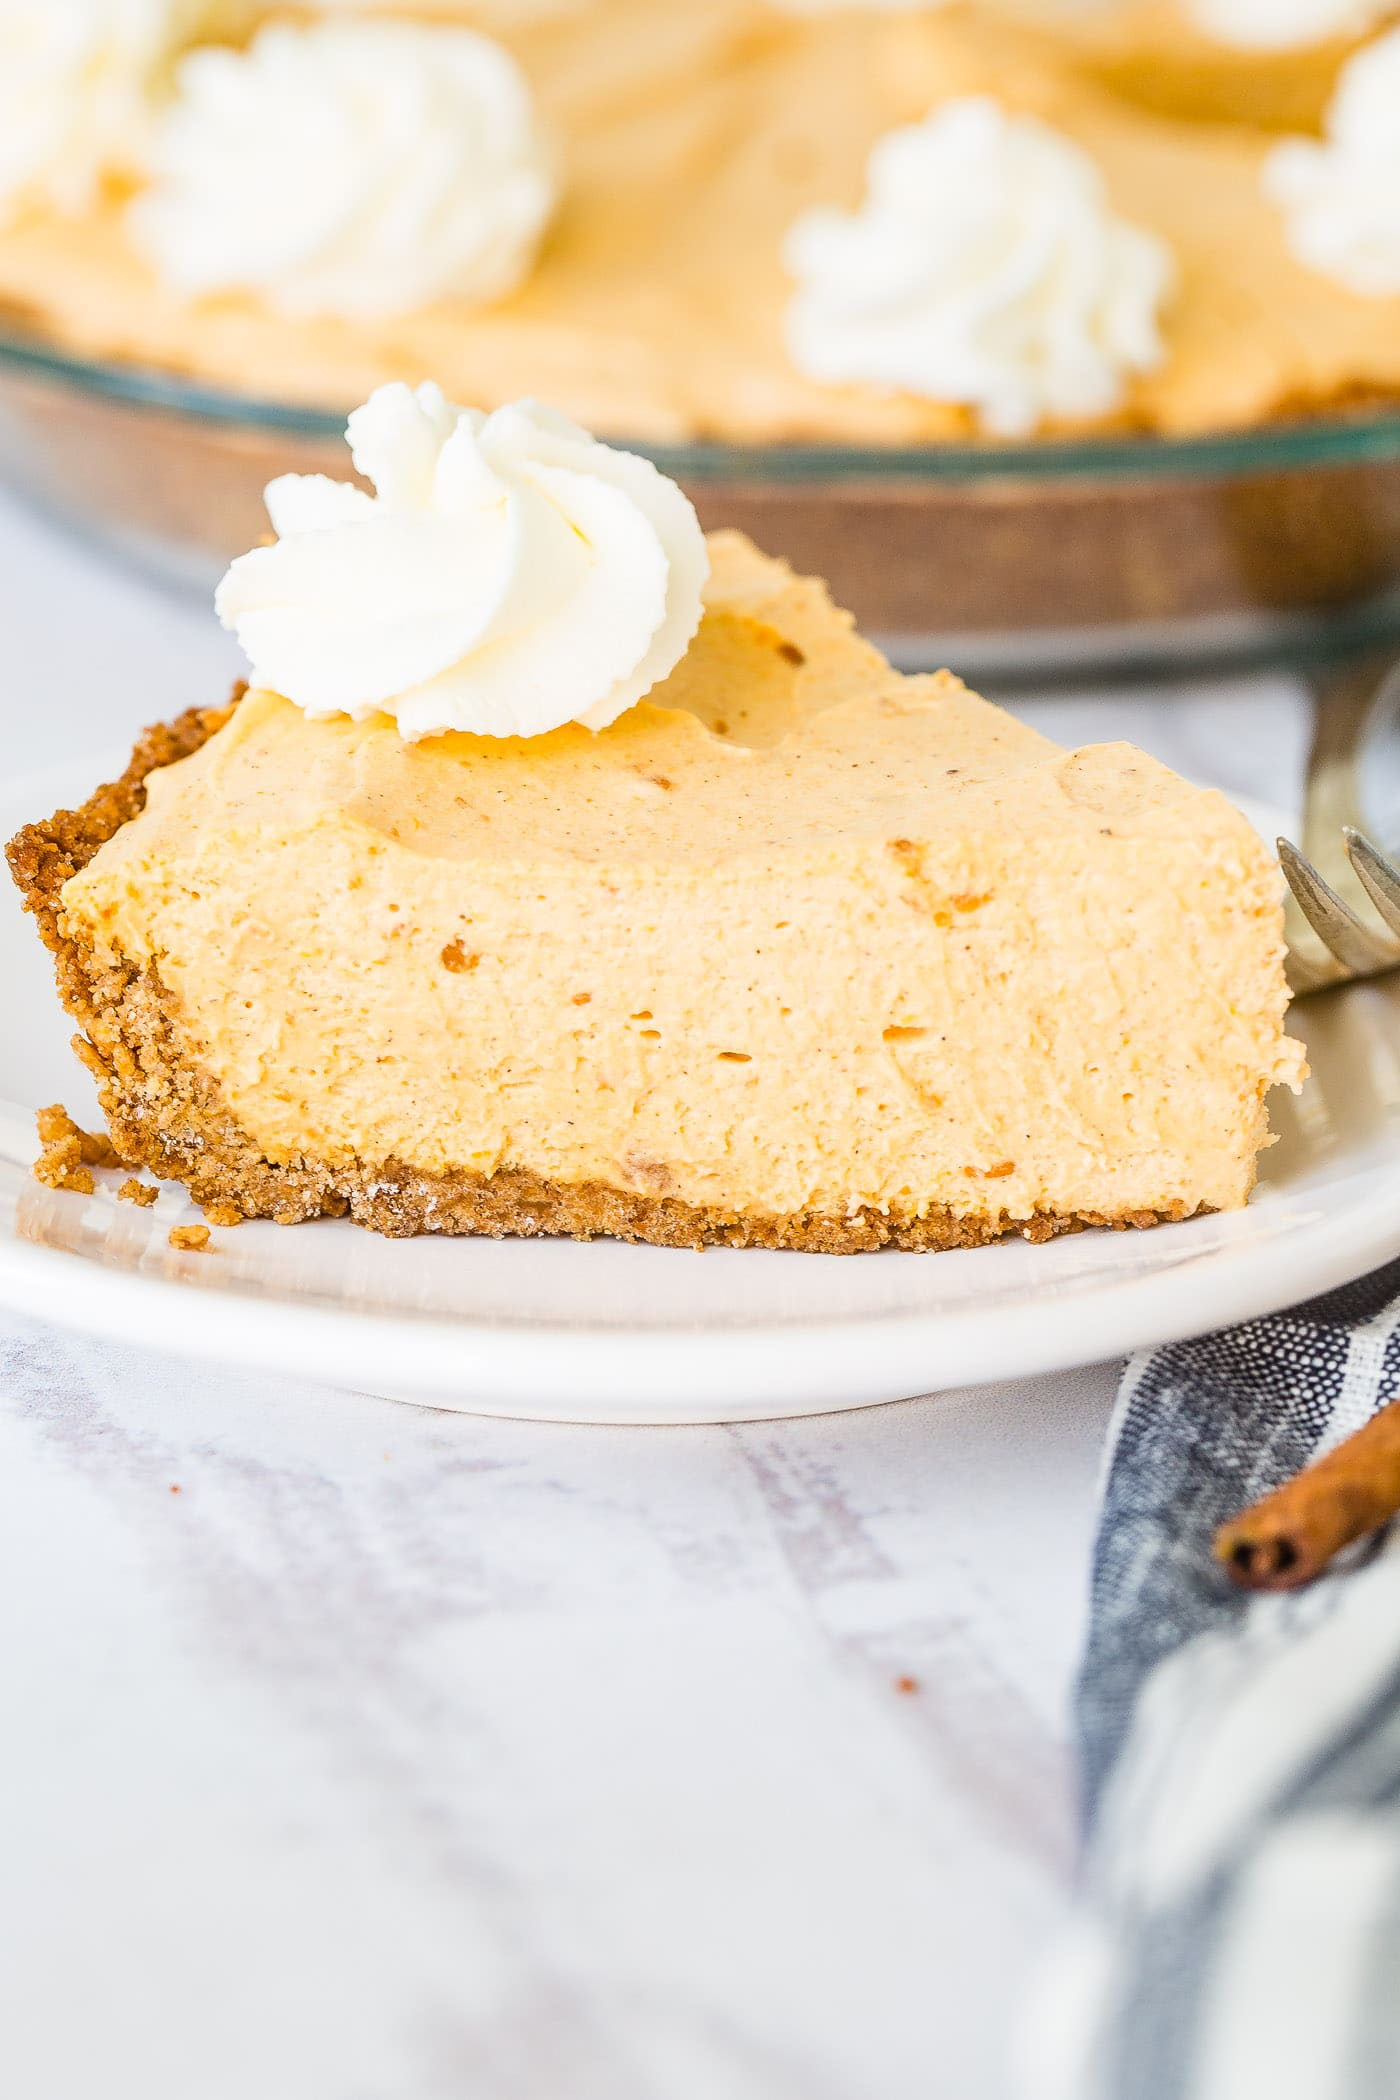 A photo of a slice of no bake pumpkin pie on a white plate with a swirl of whipped cream on top.